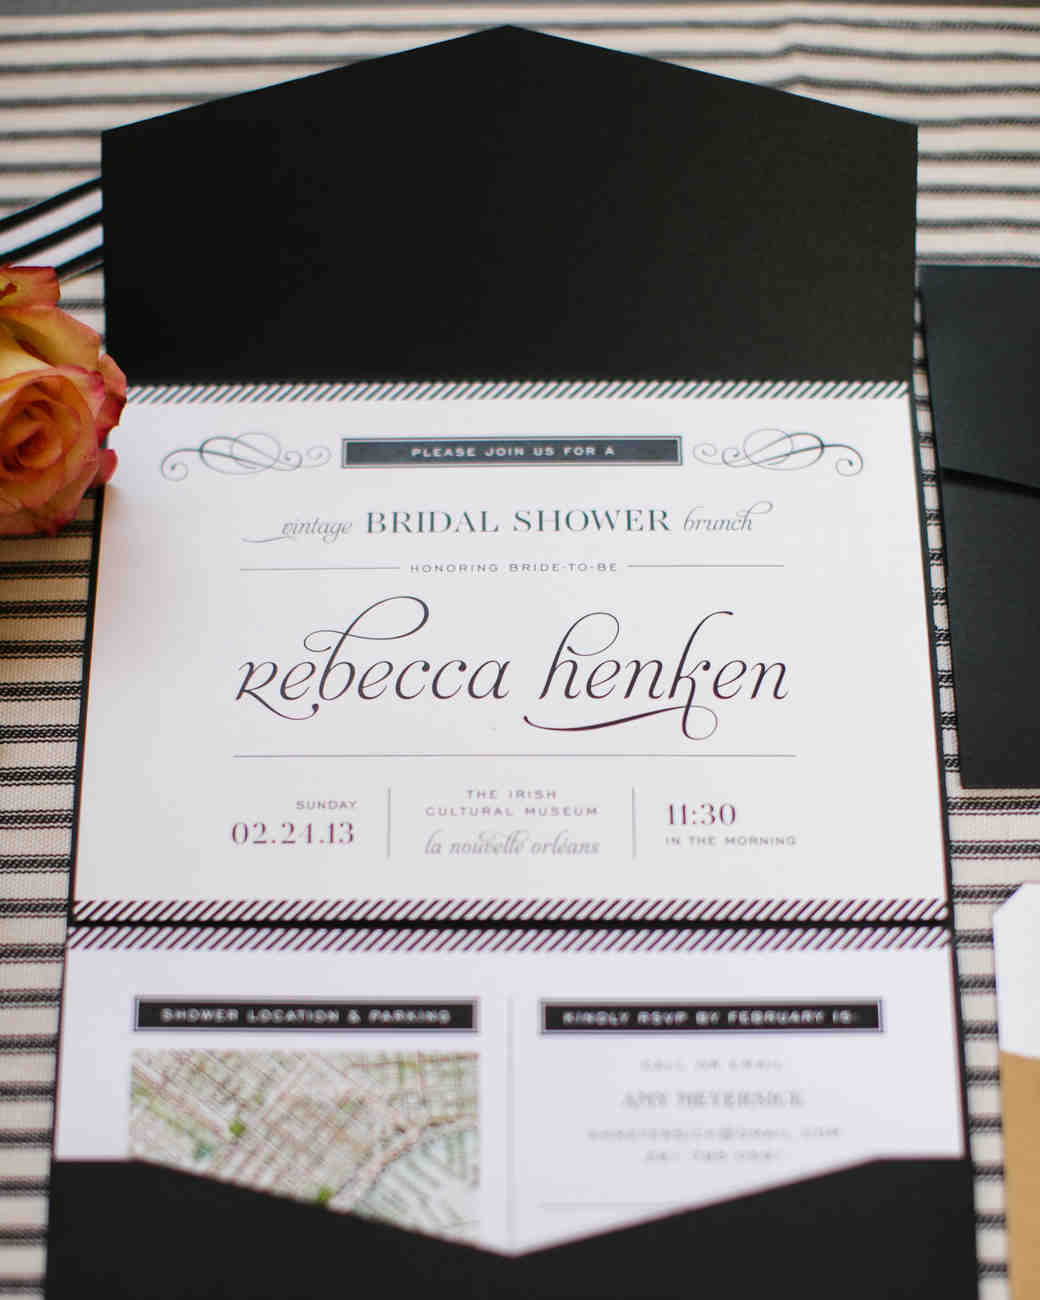 Rebecca\'s French-Themed Shower in New Orleans | Martha Stewart Weddings